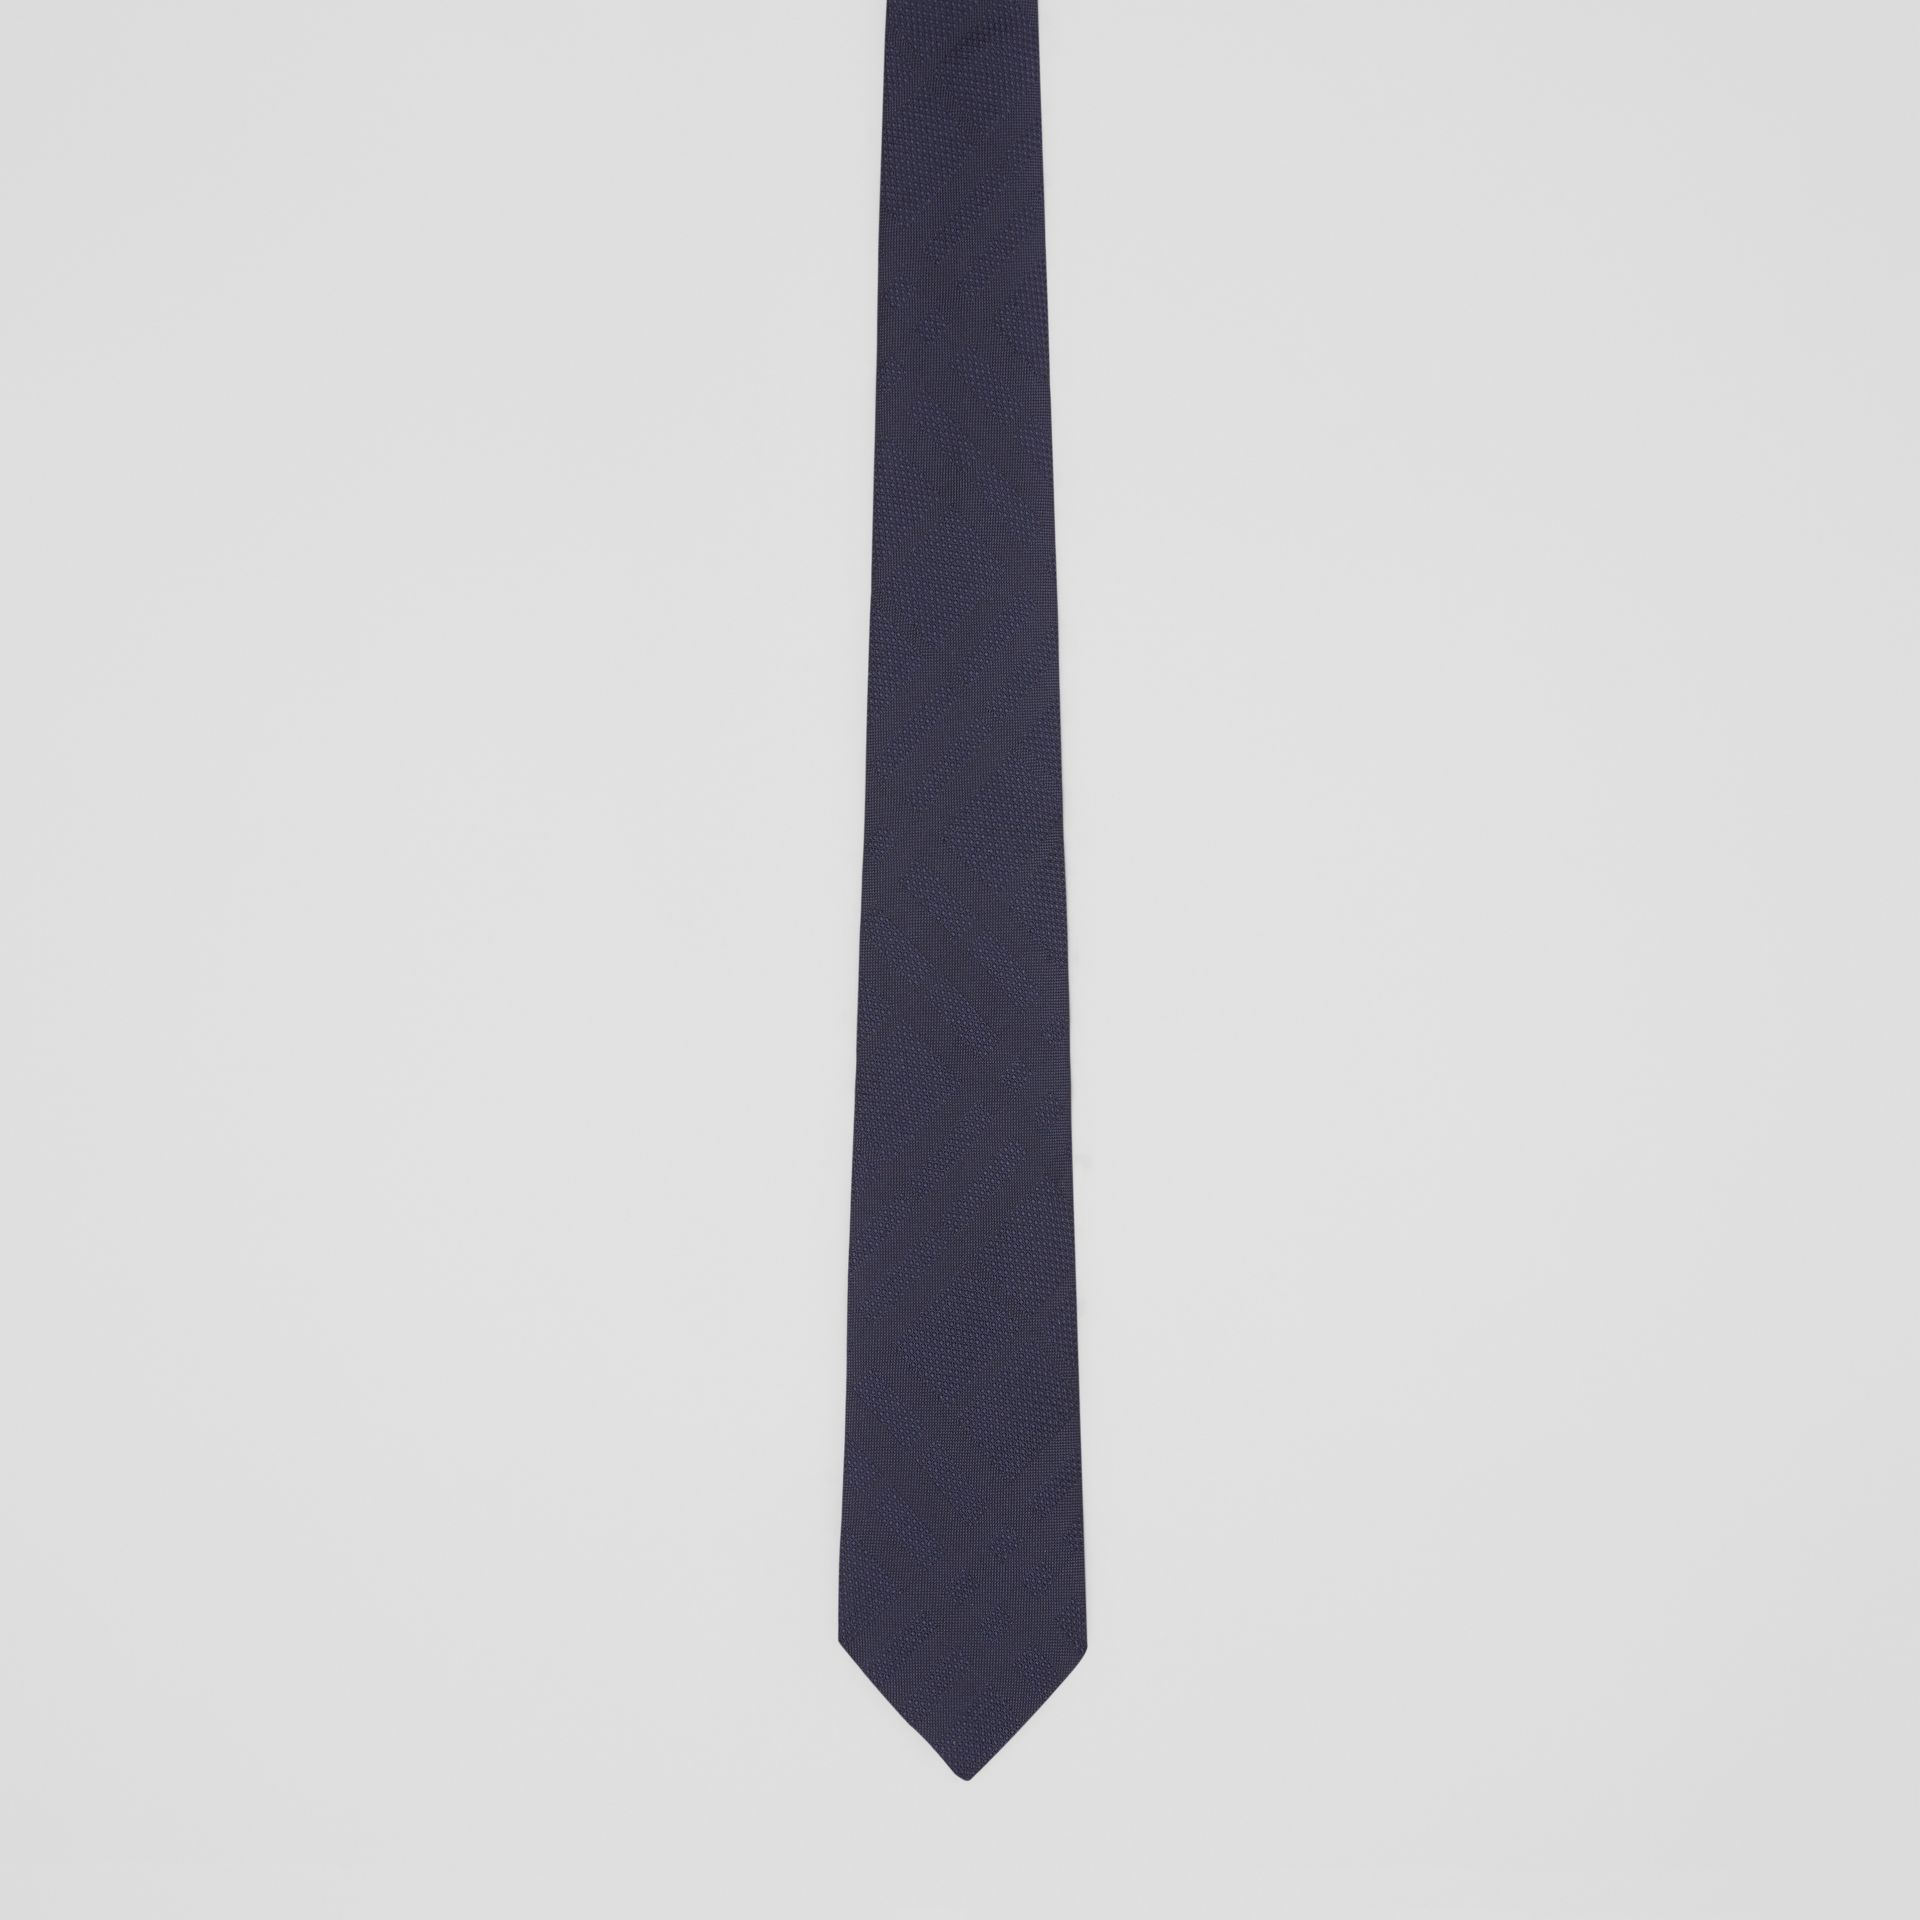 Classic Cut Check Silk Jacquard Tie in Navy - Men | Burberry Canada - gallery image 3